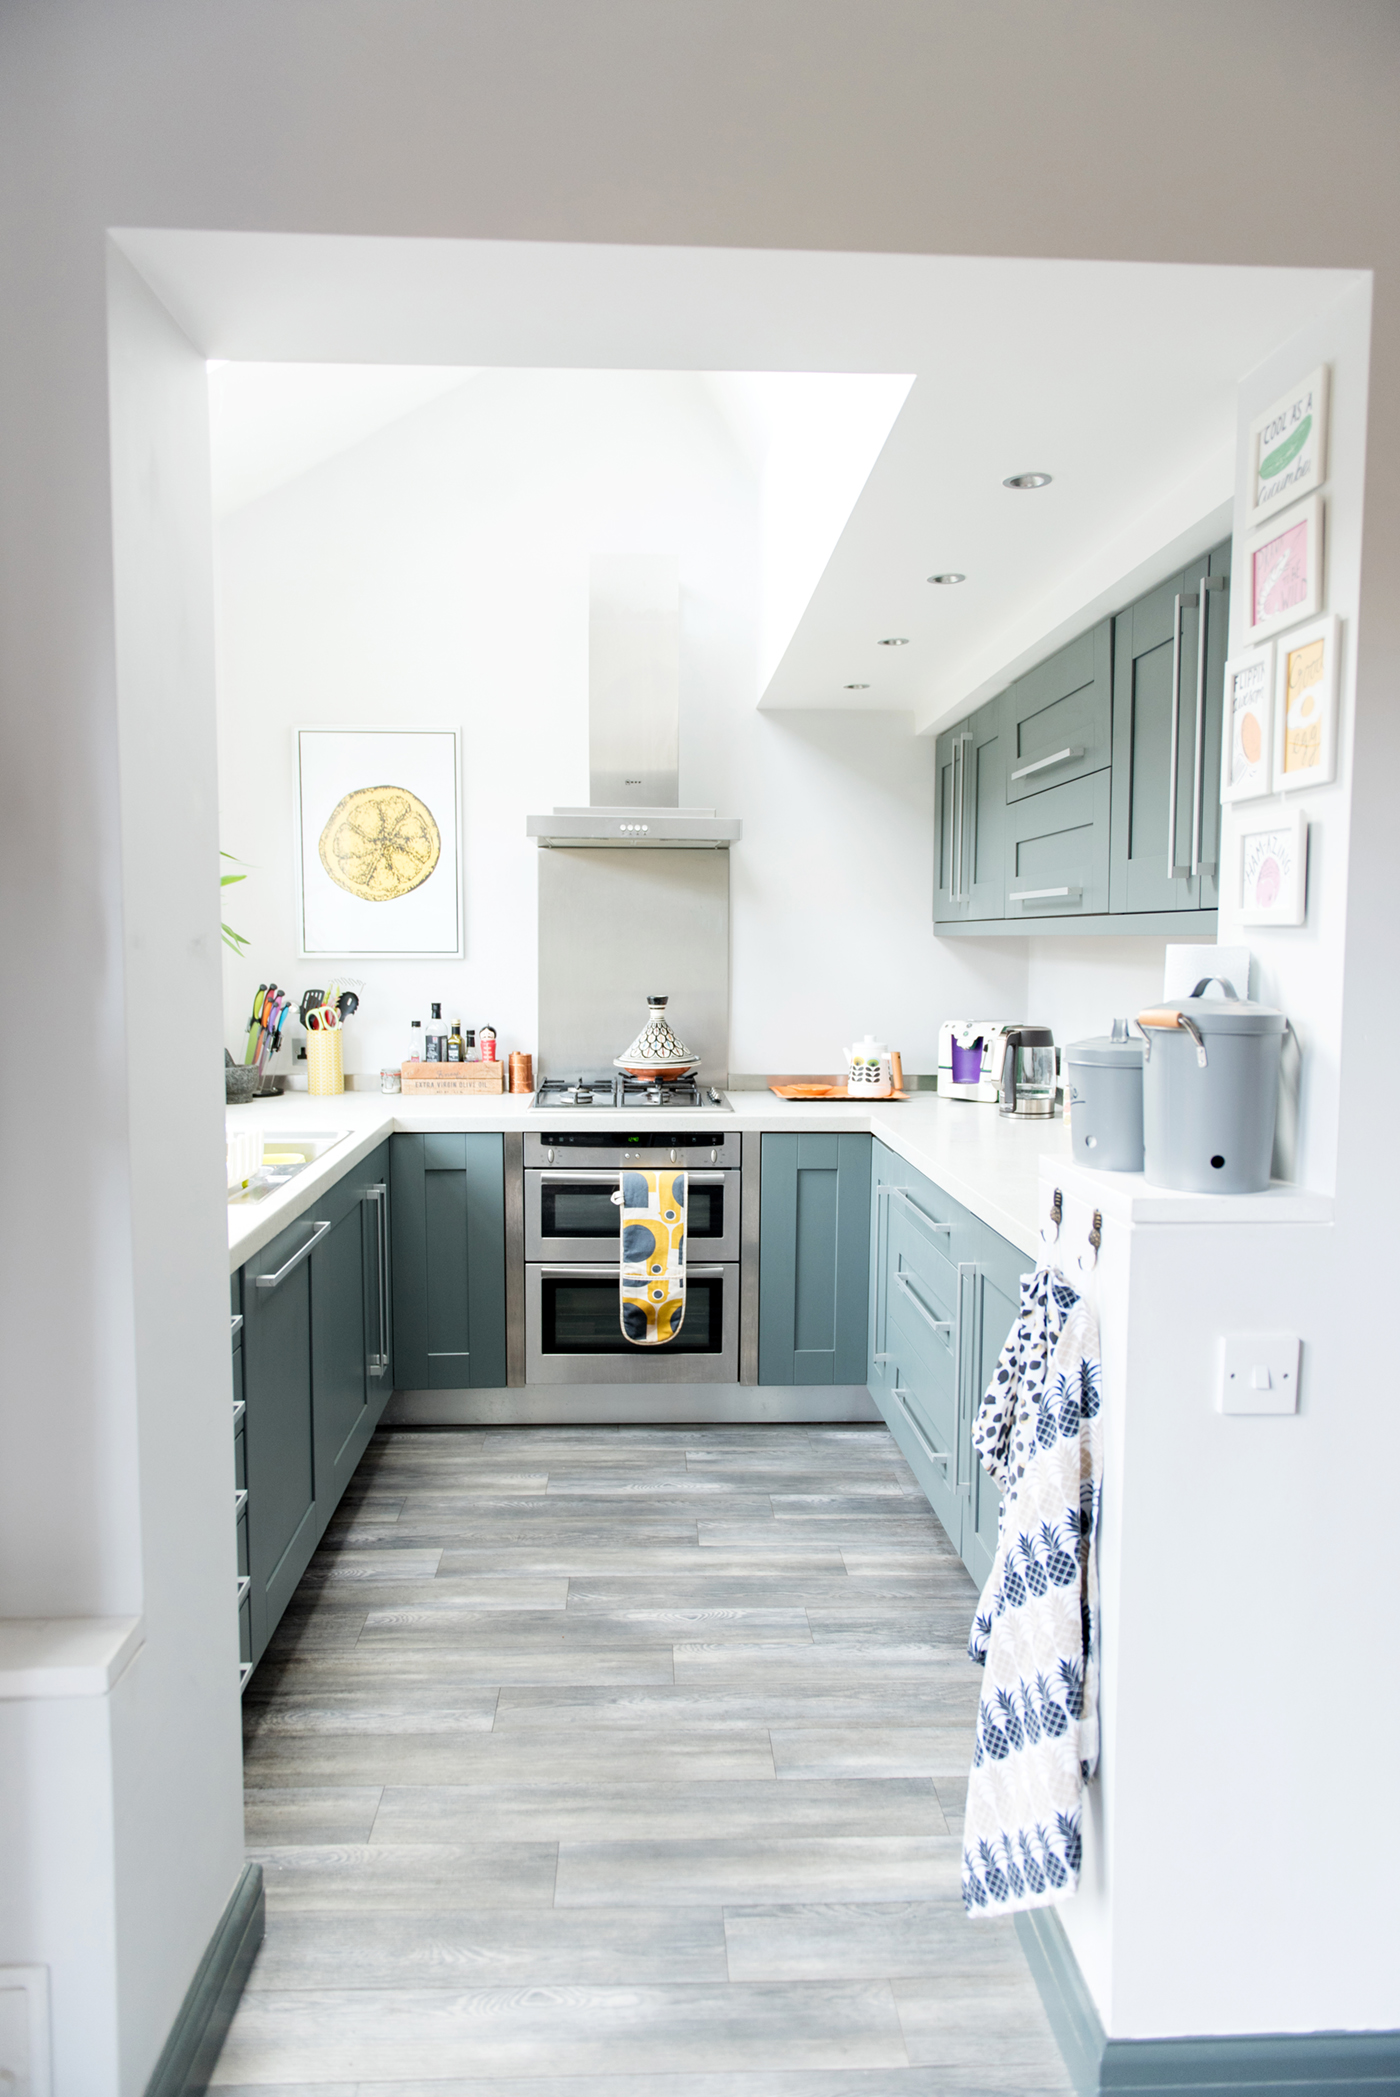 How To Create Two Rooms In A Kitchen Diner Manchester Lifestyle Blog